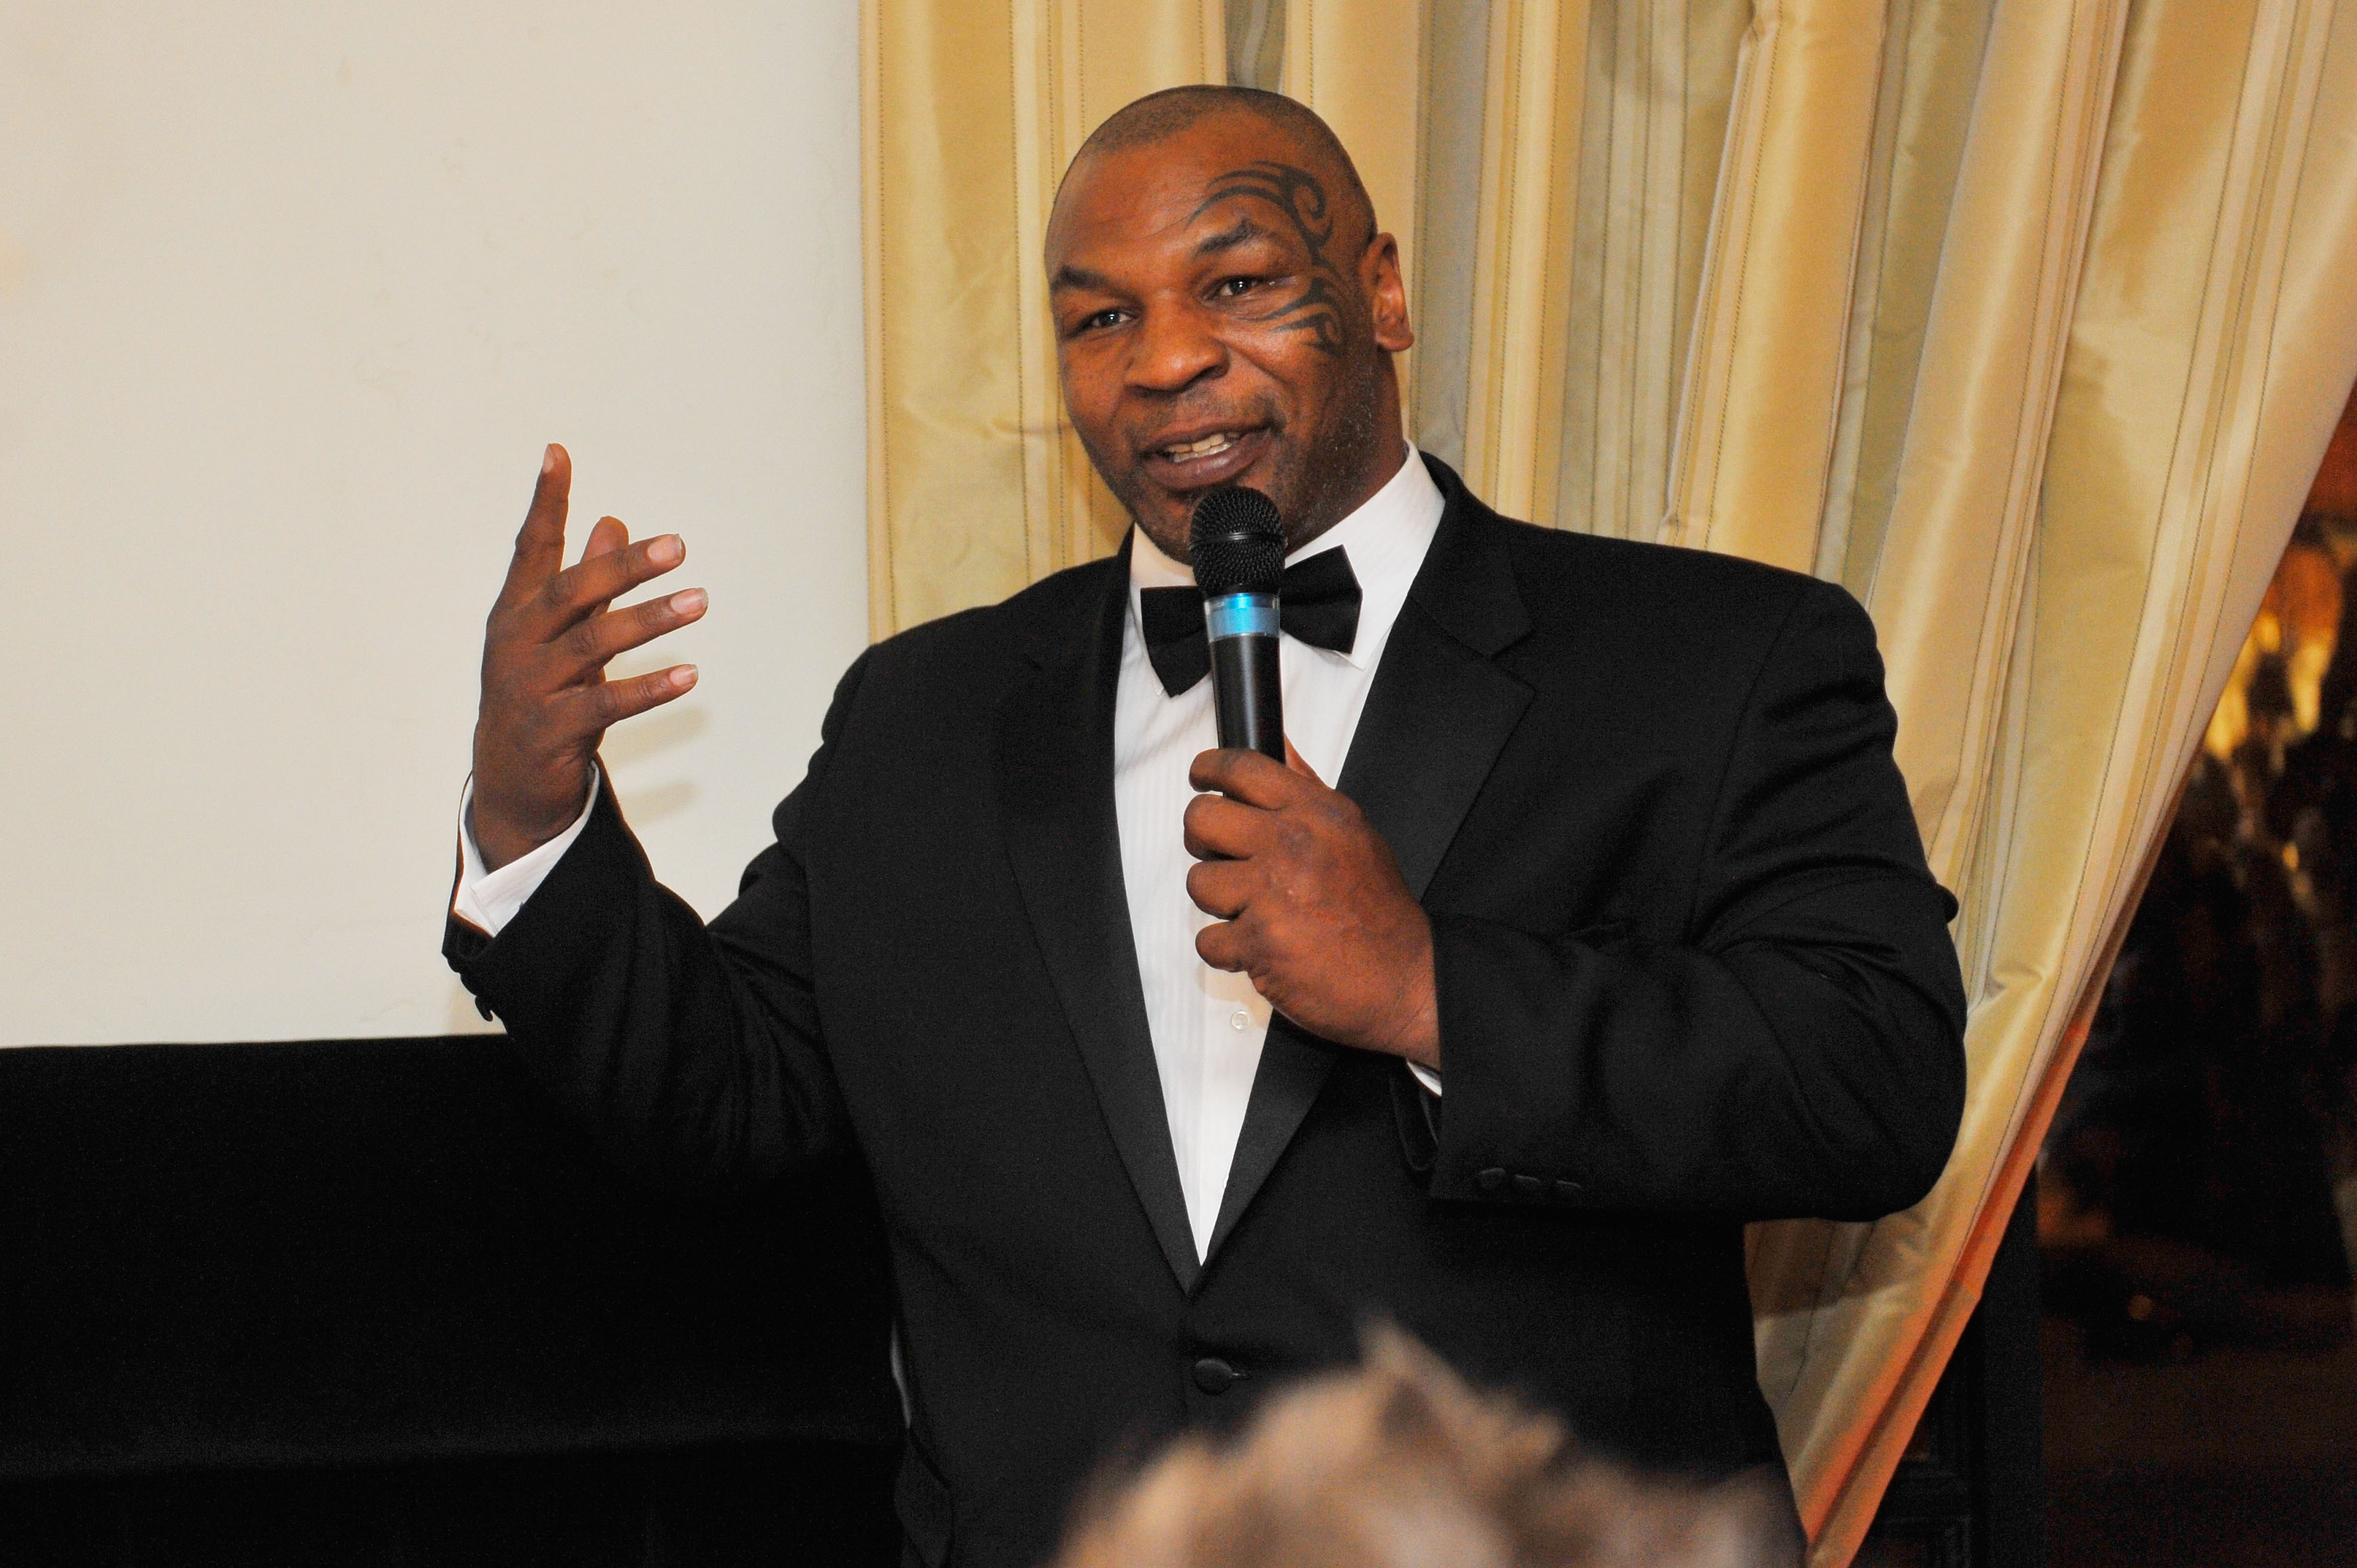 Mike Tyson talking at a dinner event